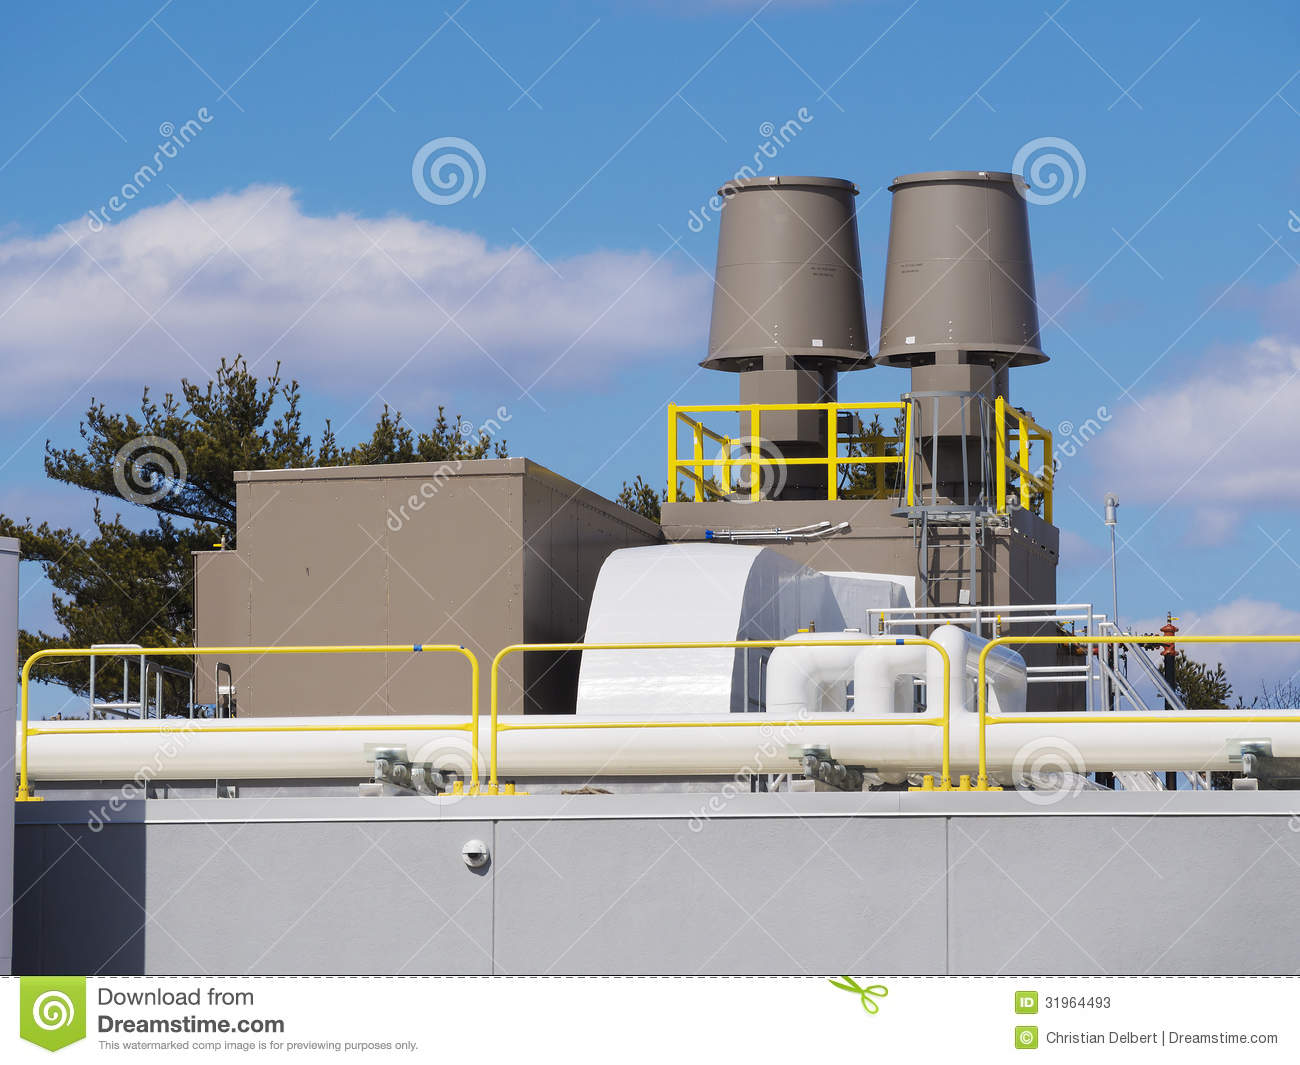 Industrial Building Ventiltors : Heating and cooling ventilation system stock photos